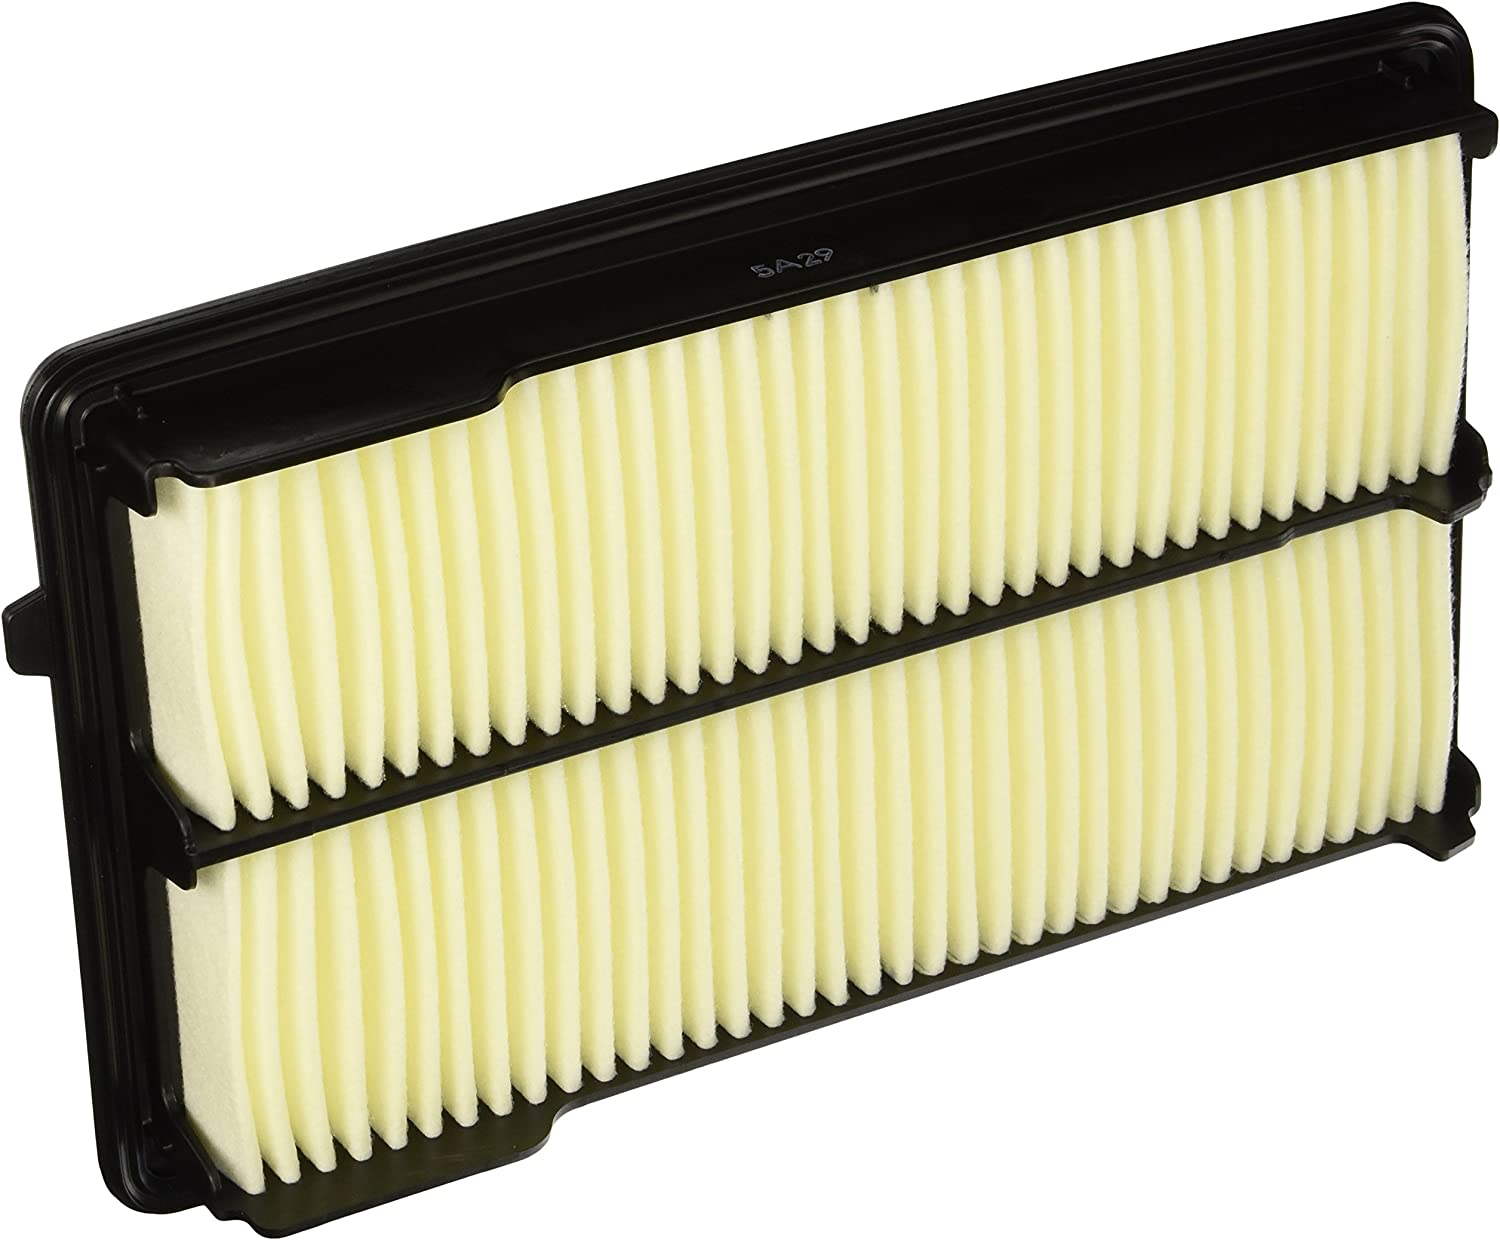 17220-5G0-A00 Genuine Honda OEM Accord V6 6-Cylinder Engine Air Filter